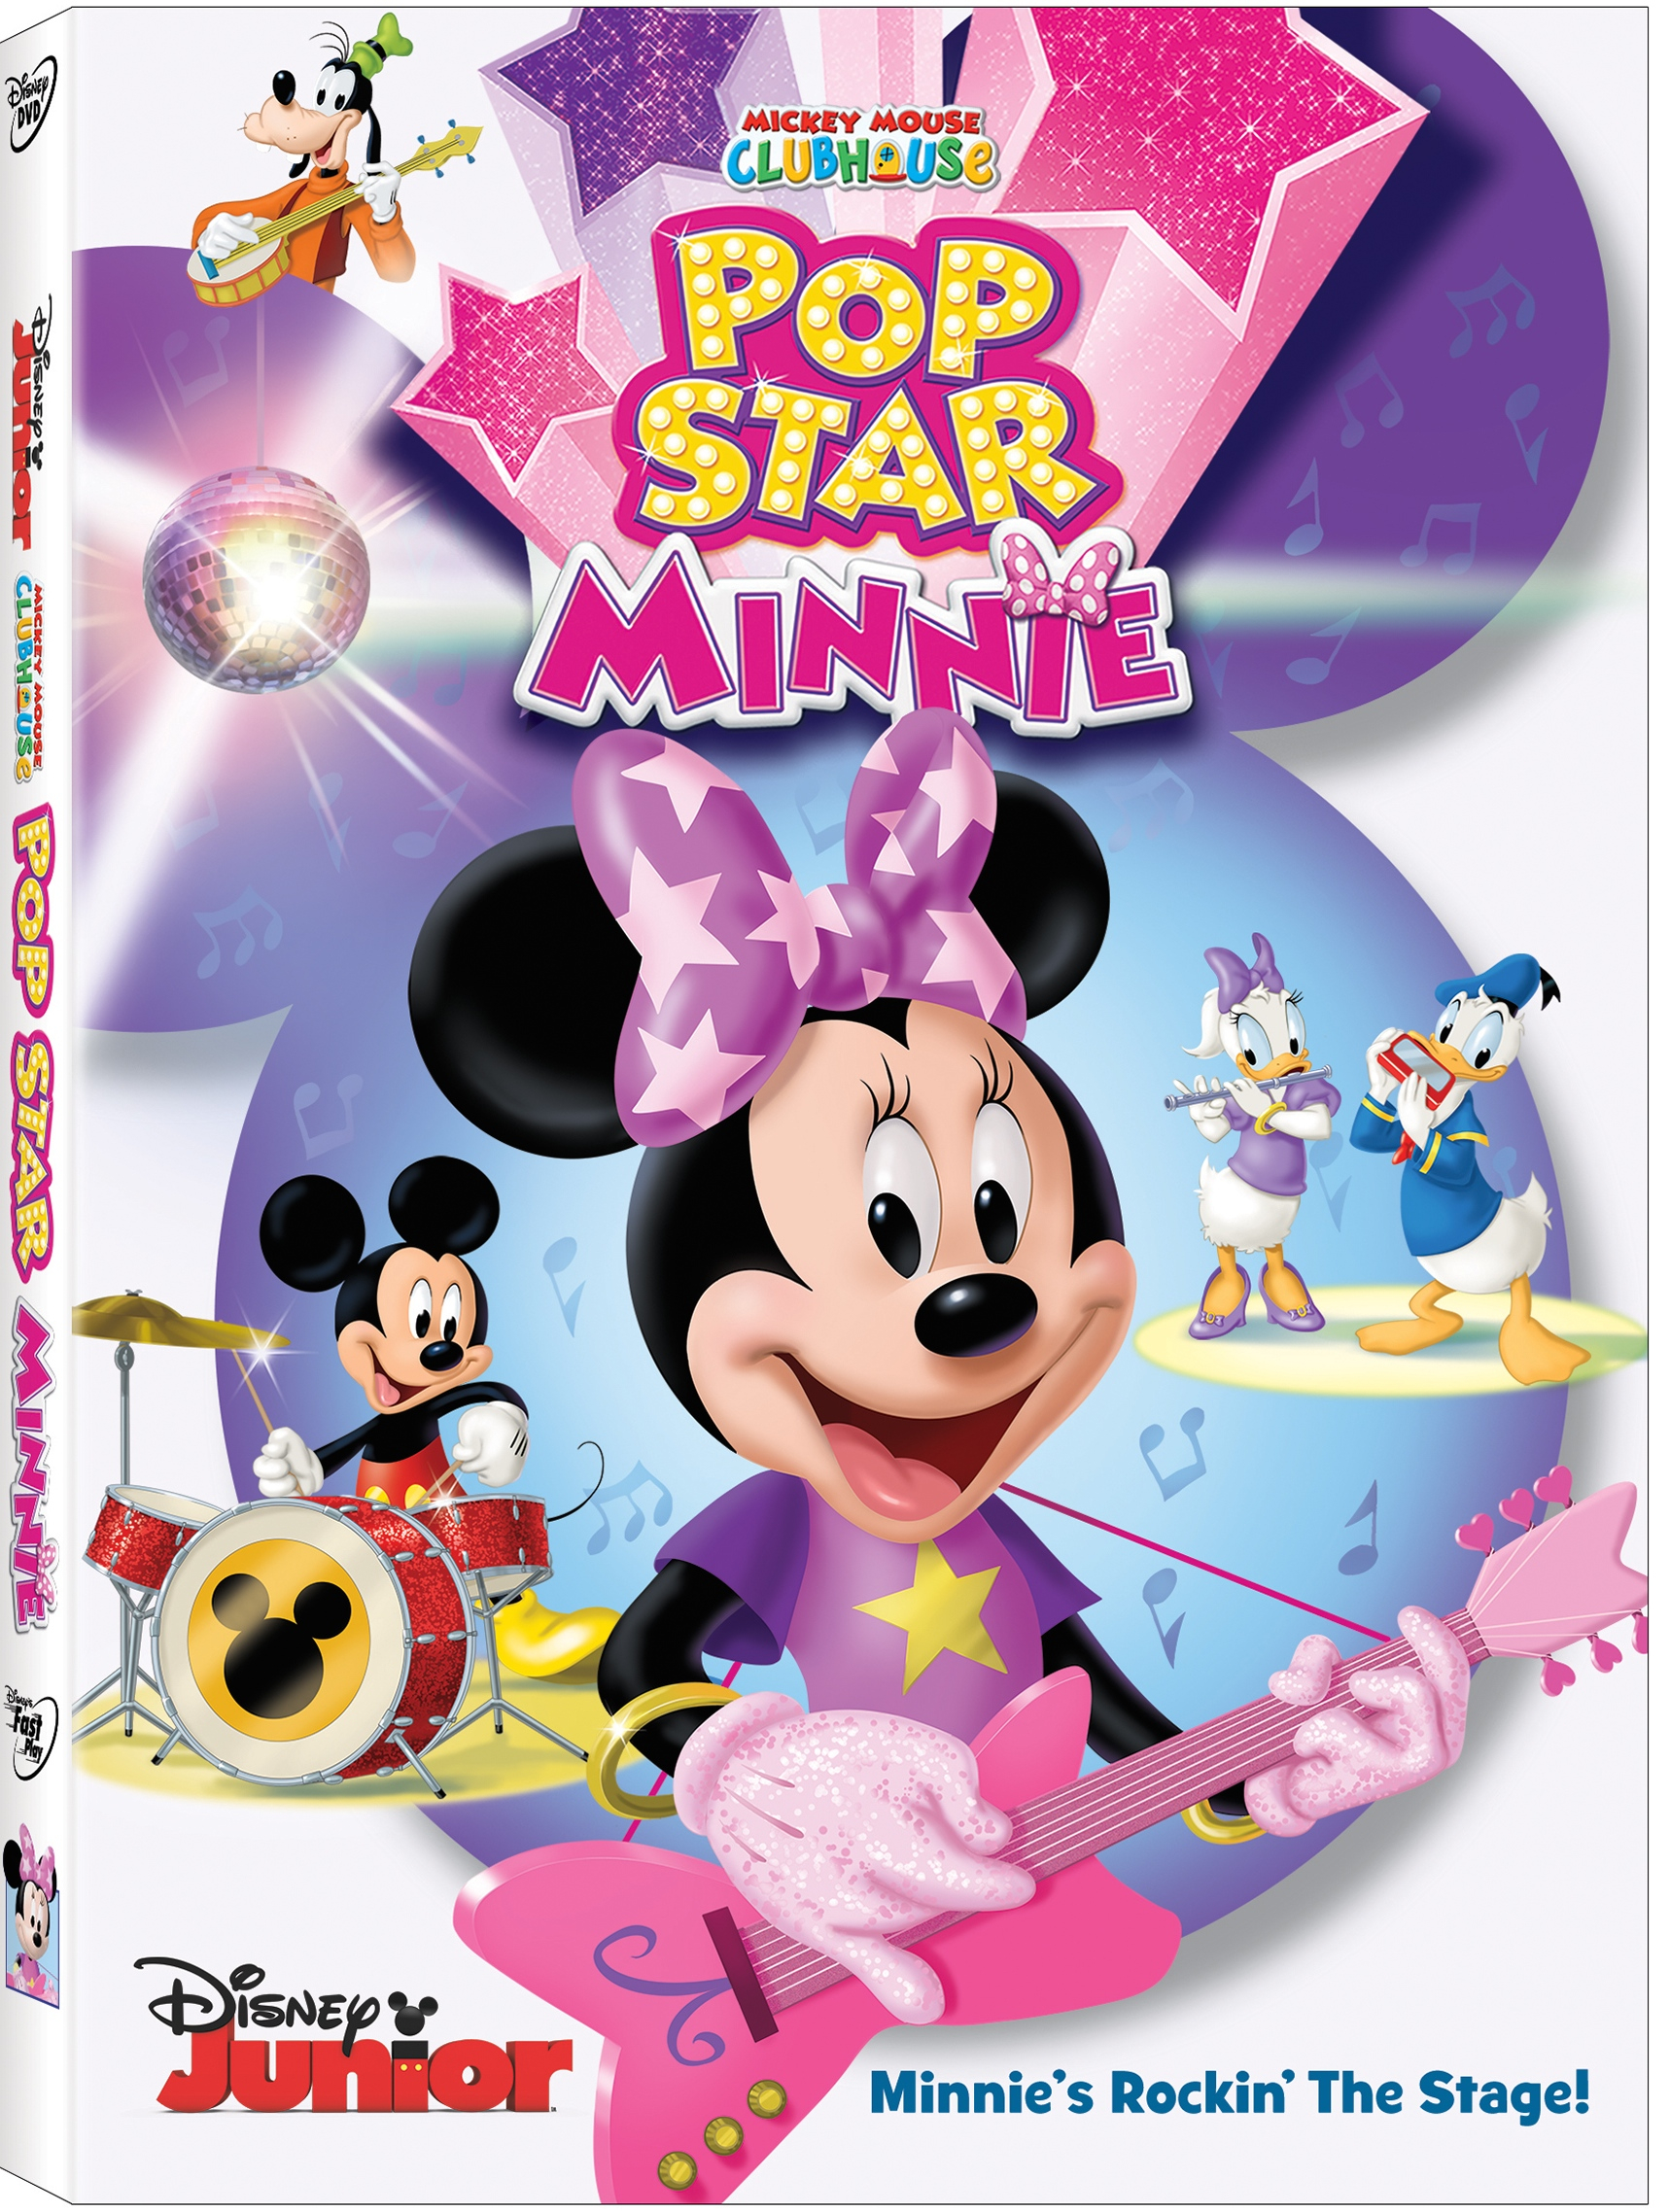 Upcoming DVD Release – Mickey Mouse Clubhouse: Pop Star Minnie – February 2, 2016